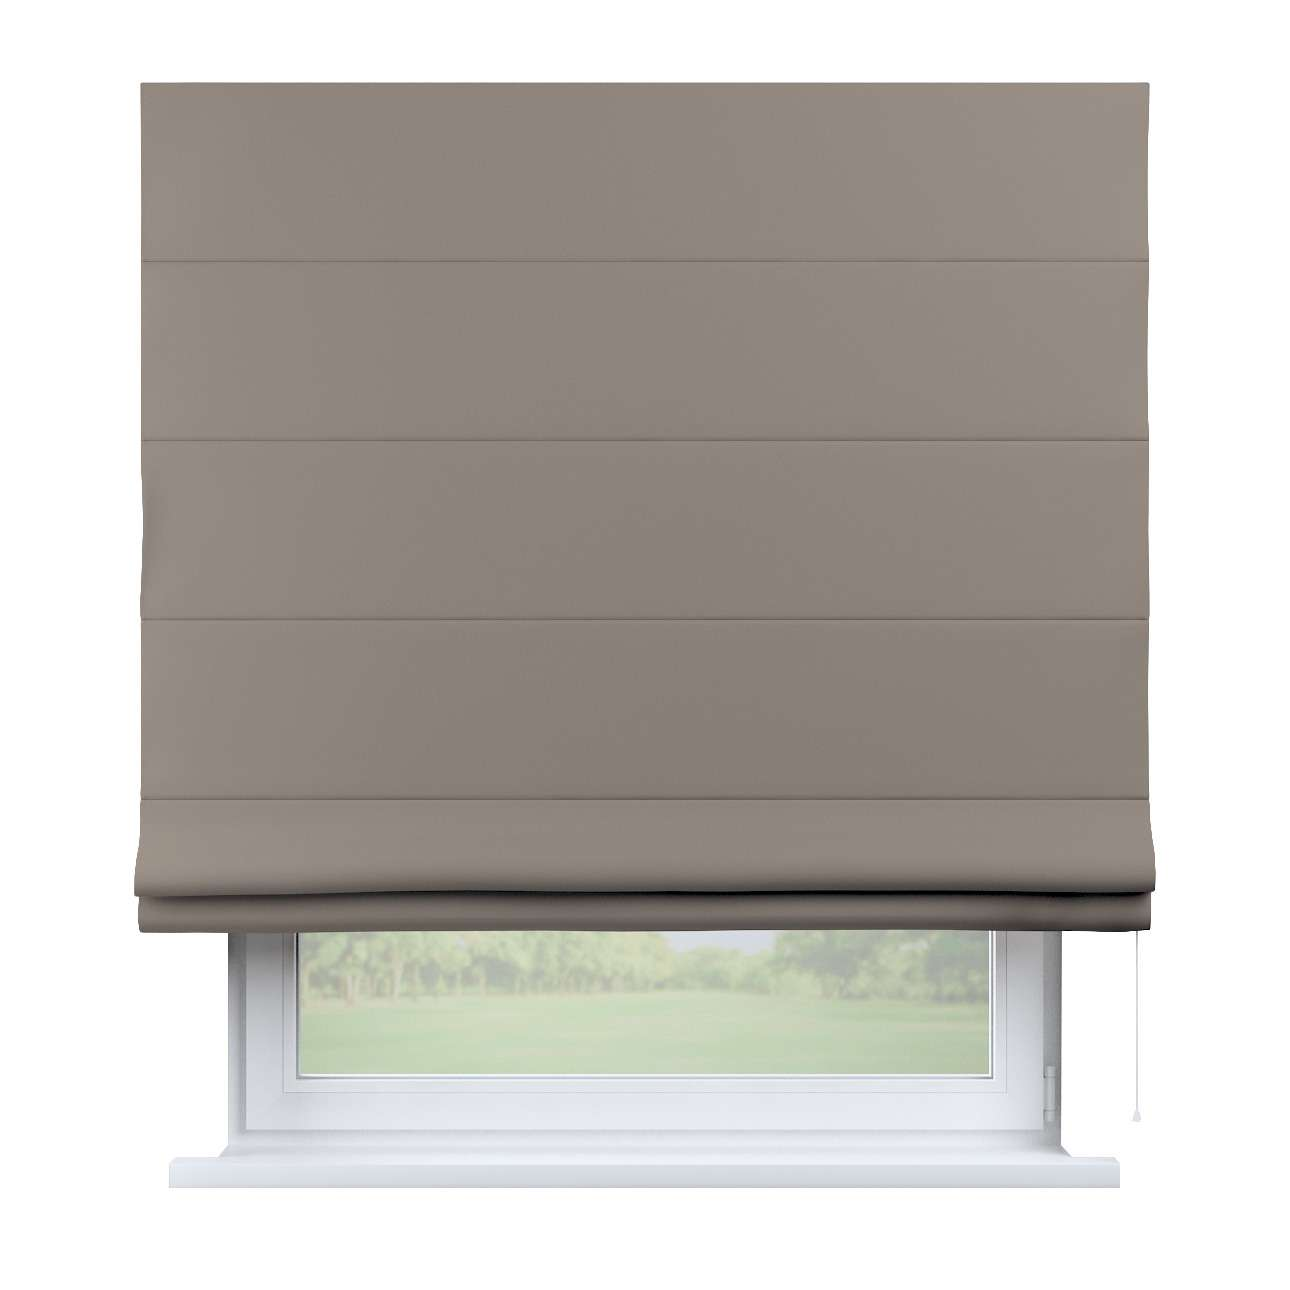 Blackout roman blind in collection Blackout, fabric: 269-81